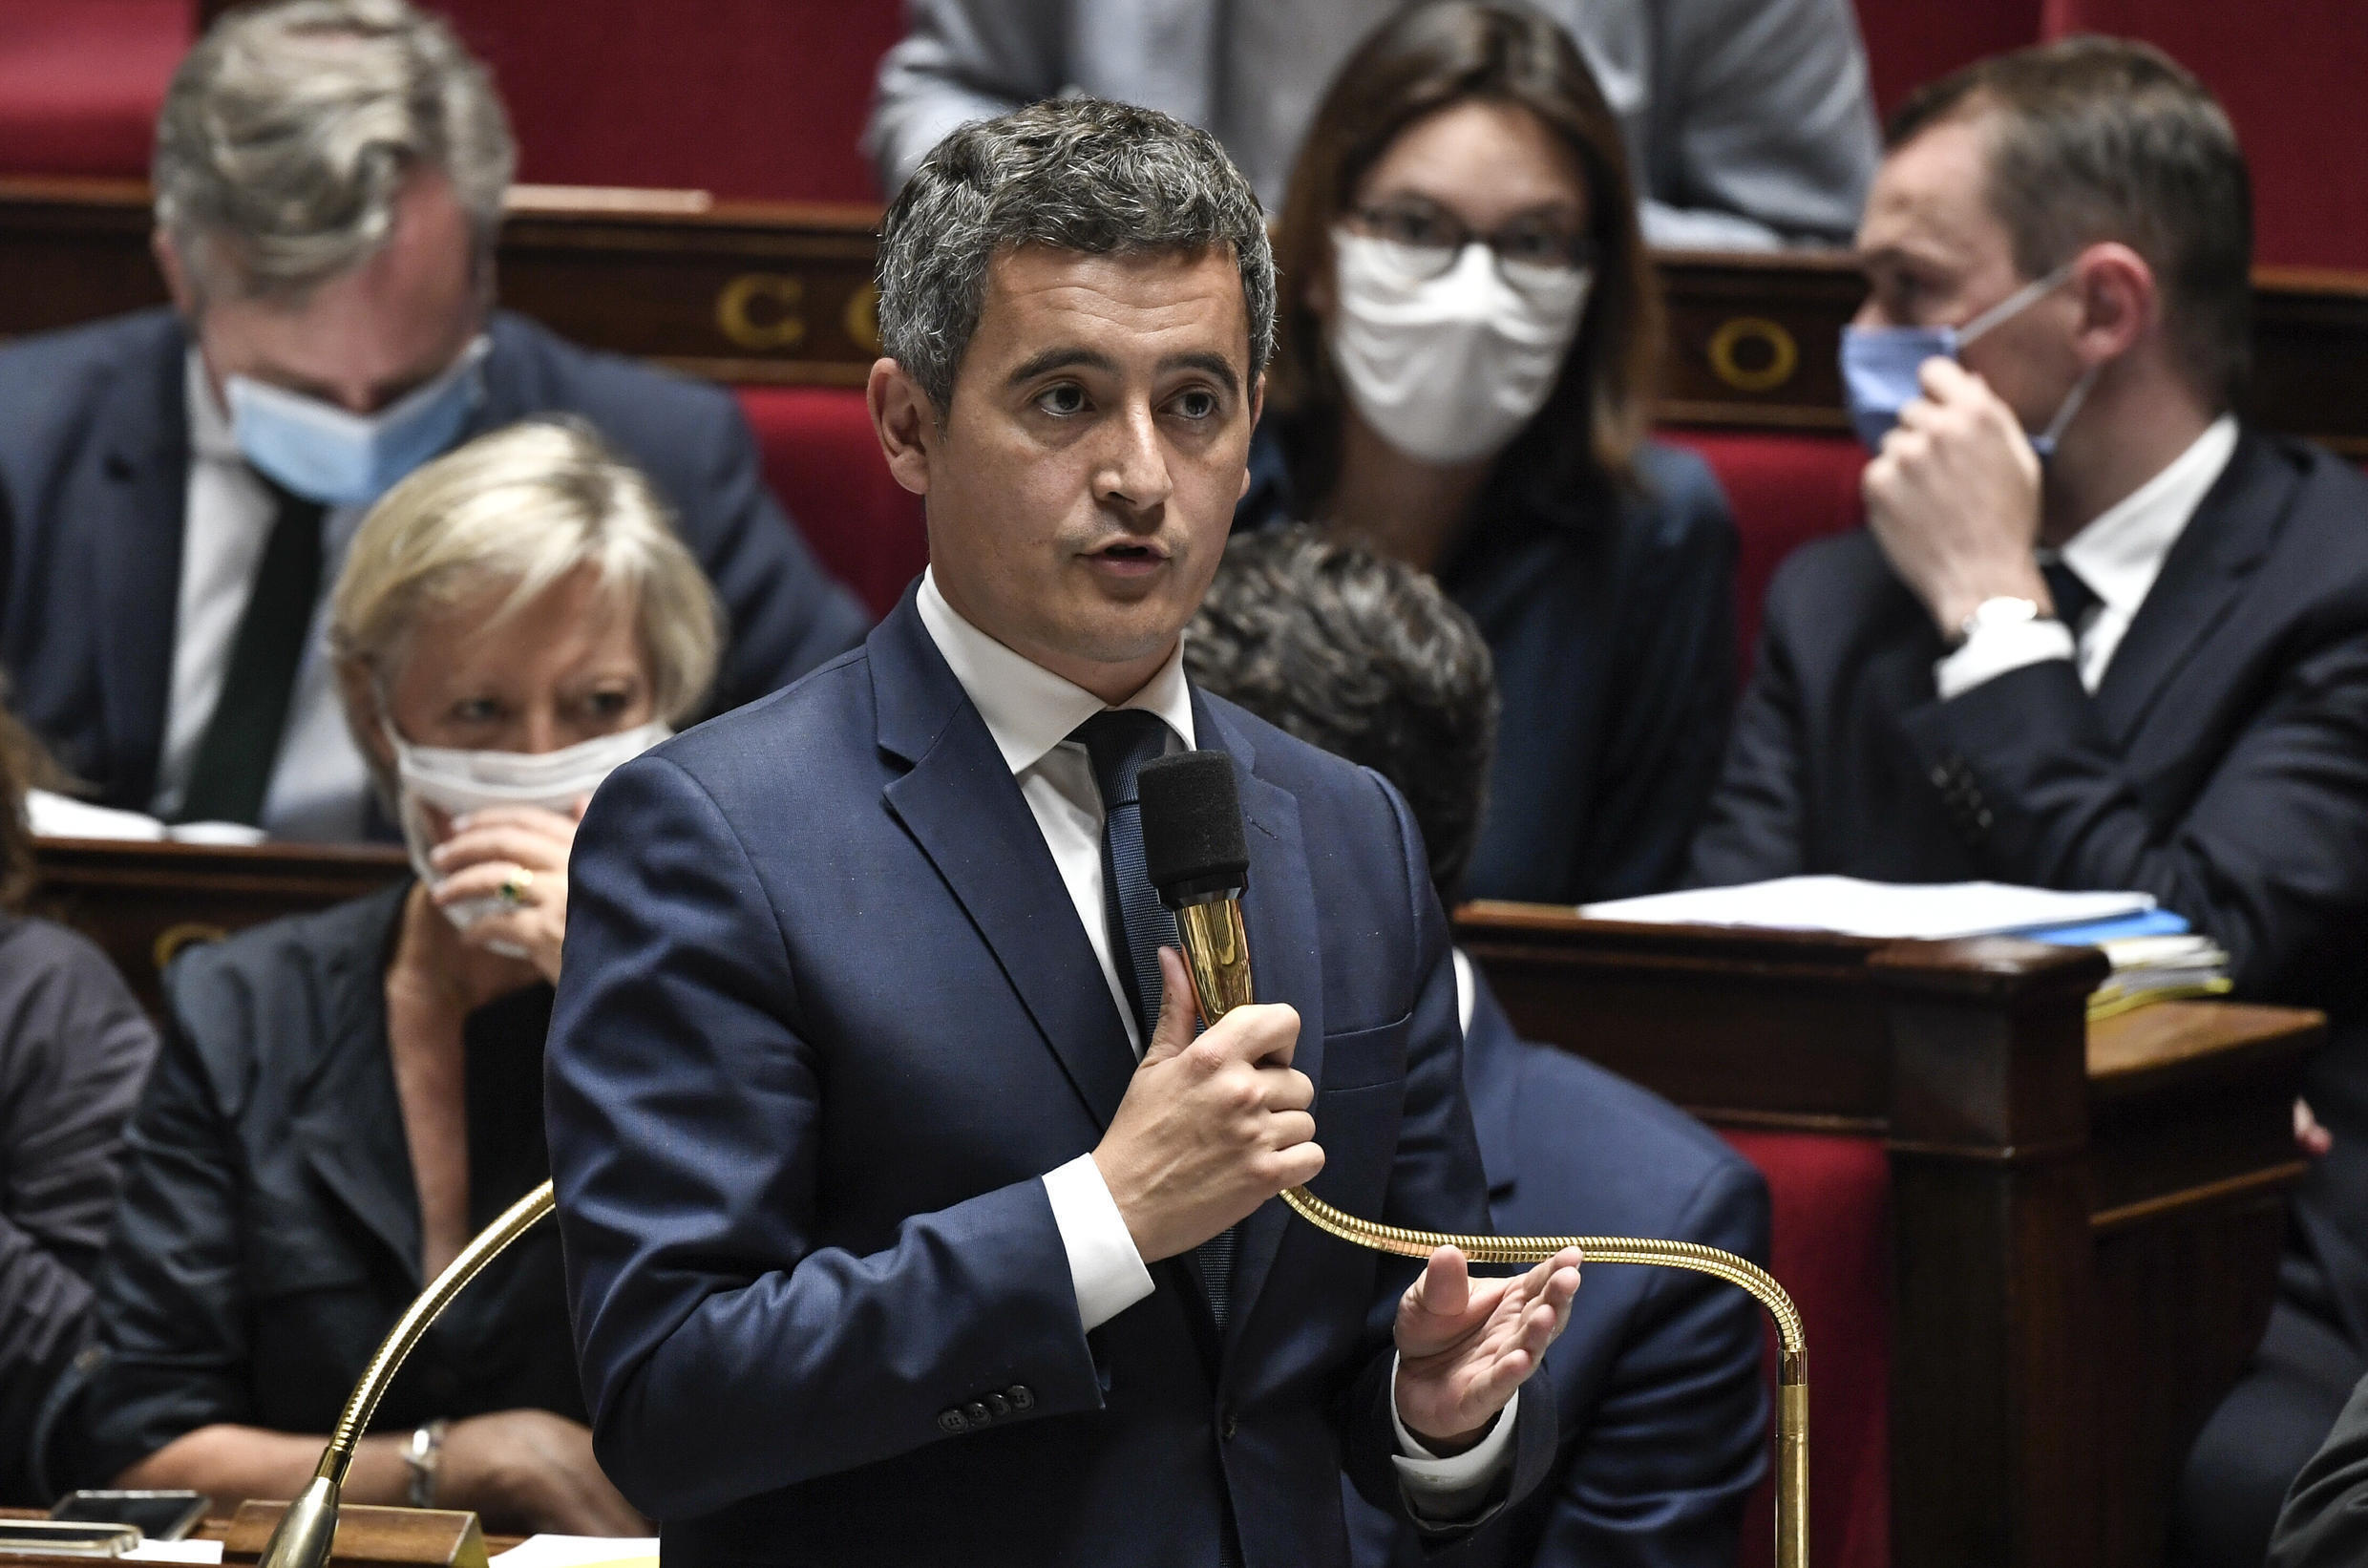 French Interior Minister Gerald Darmanin speaks during a session of Questions to the government, on July 28, 2020 at the National Assembly in Paris.